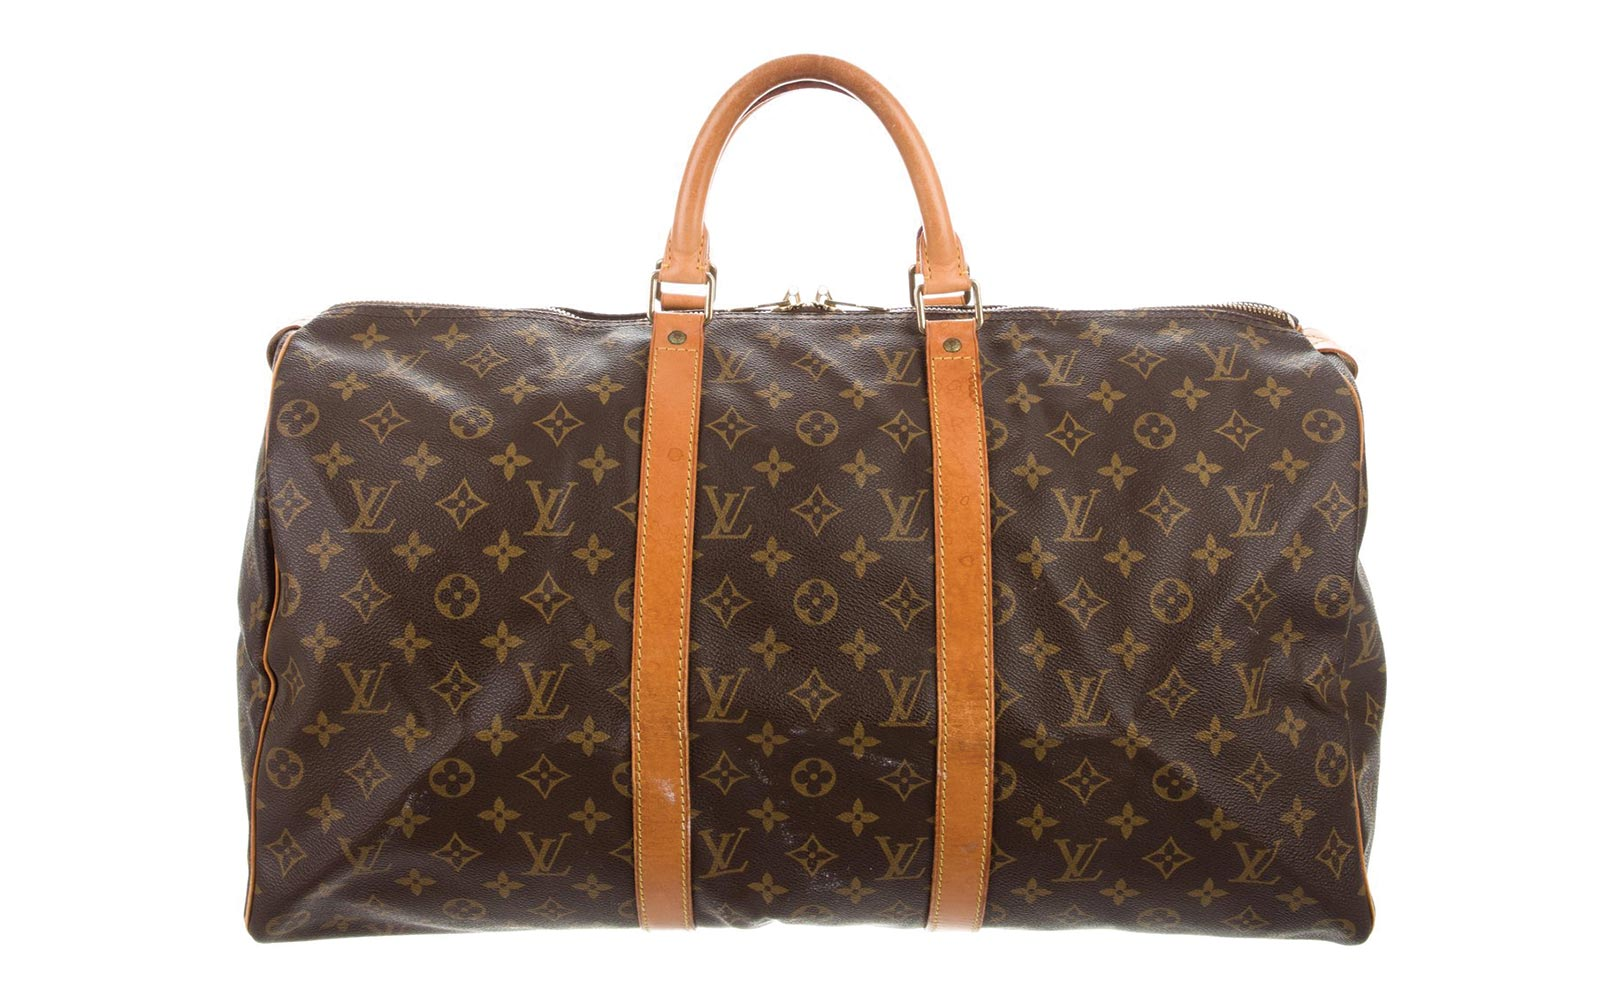 Vintage Louis Vuitton Duffel Bag